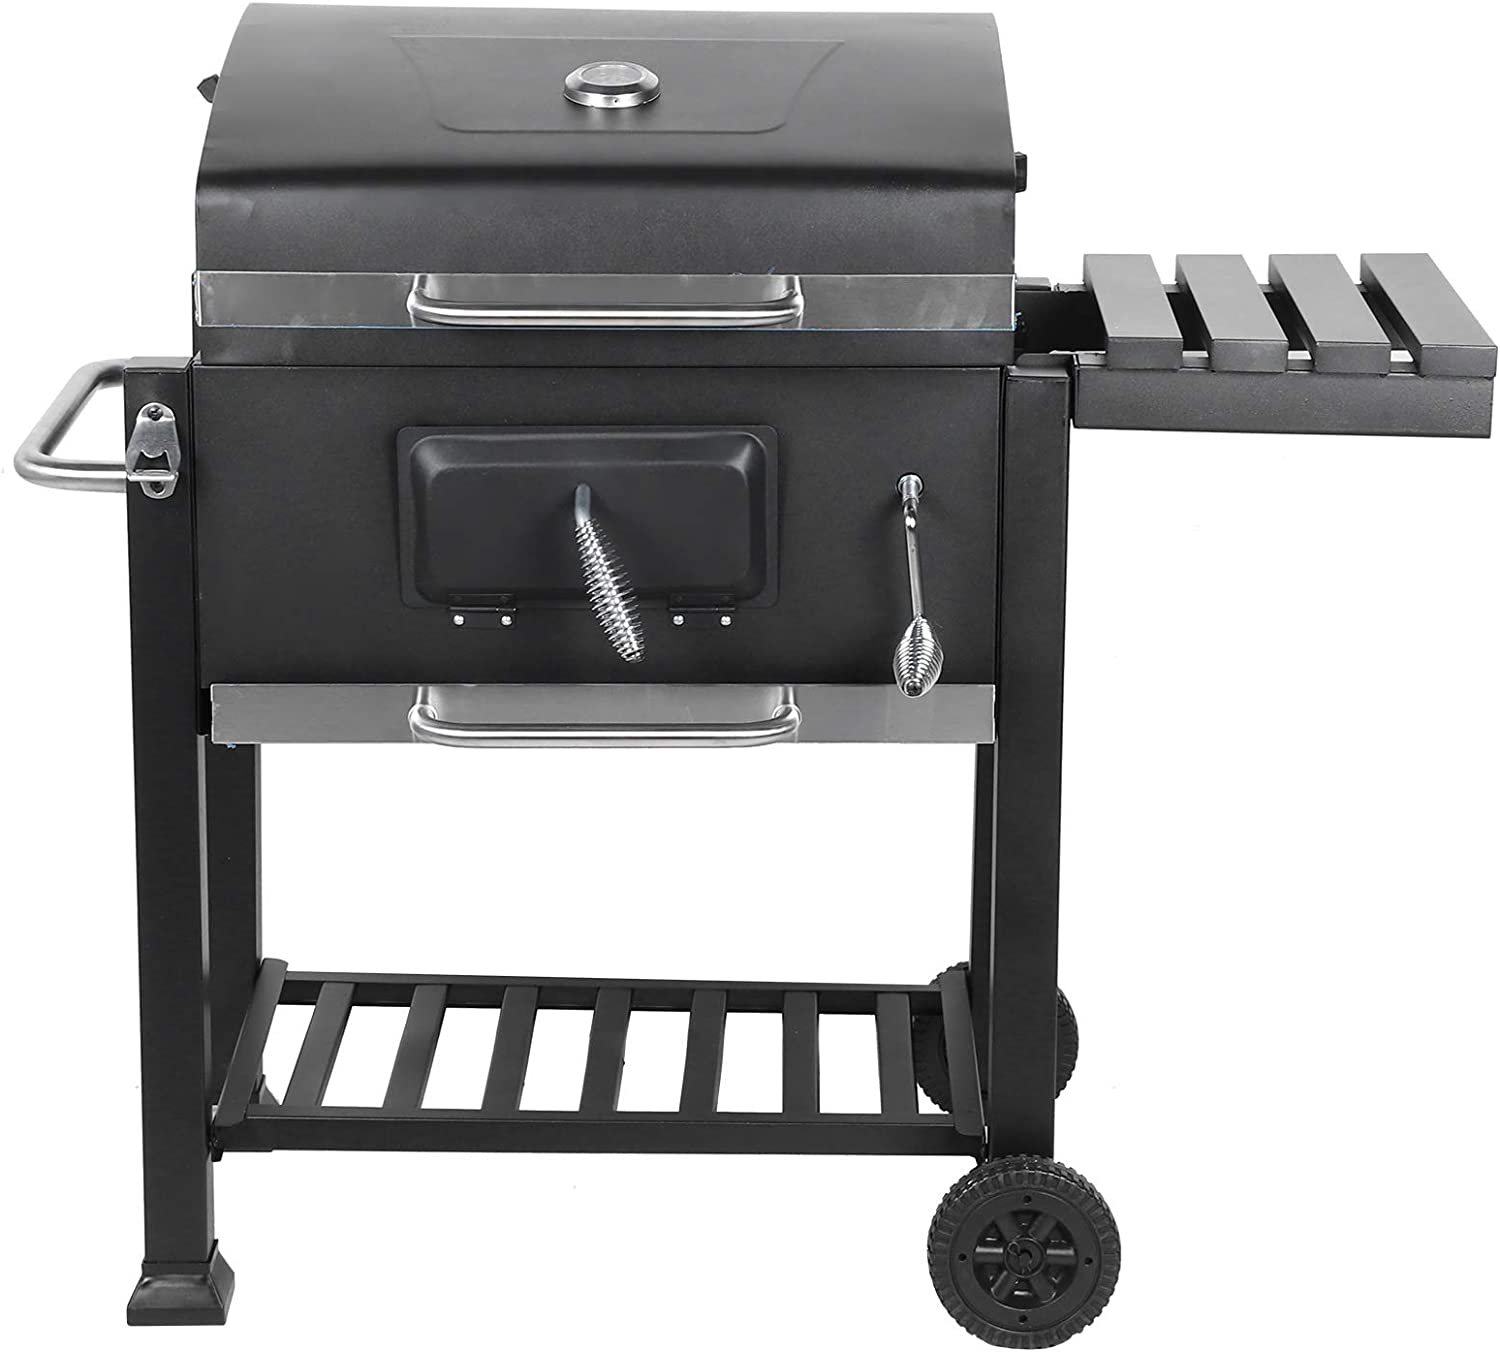 YIUS Barbecue Grill Portable Garden Charcoal Non‑Stick Barbecu Nashville-Davidson Mall Cheap mail order specialty store